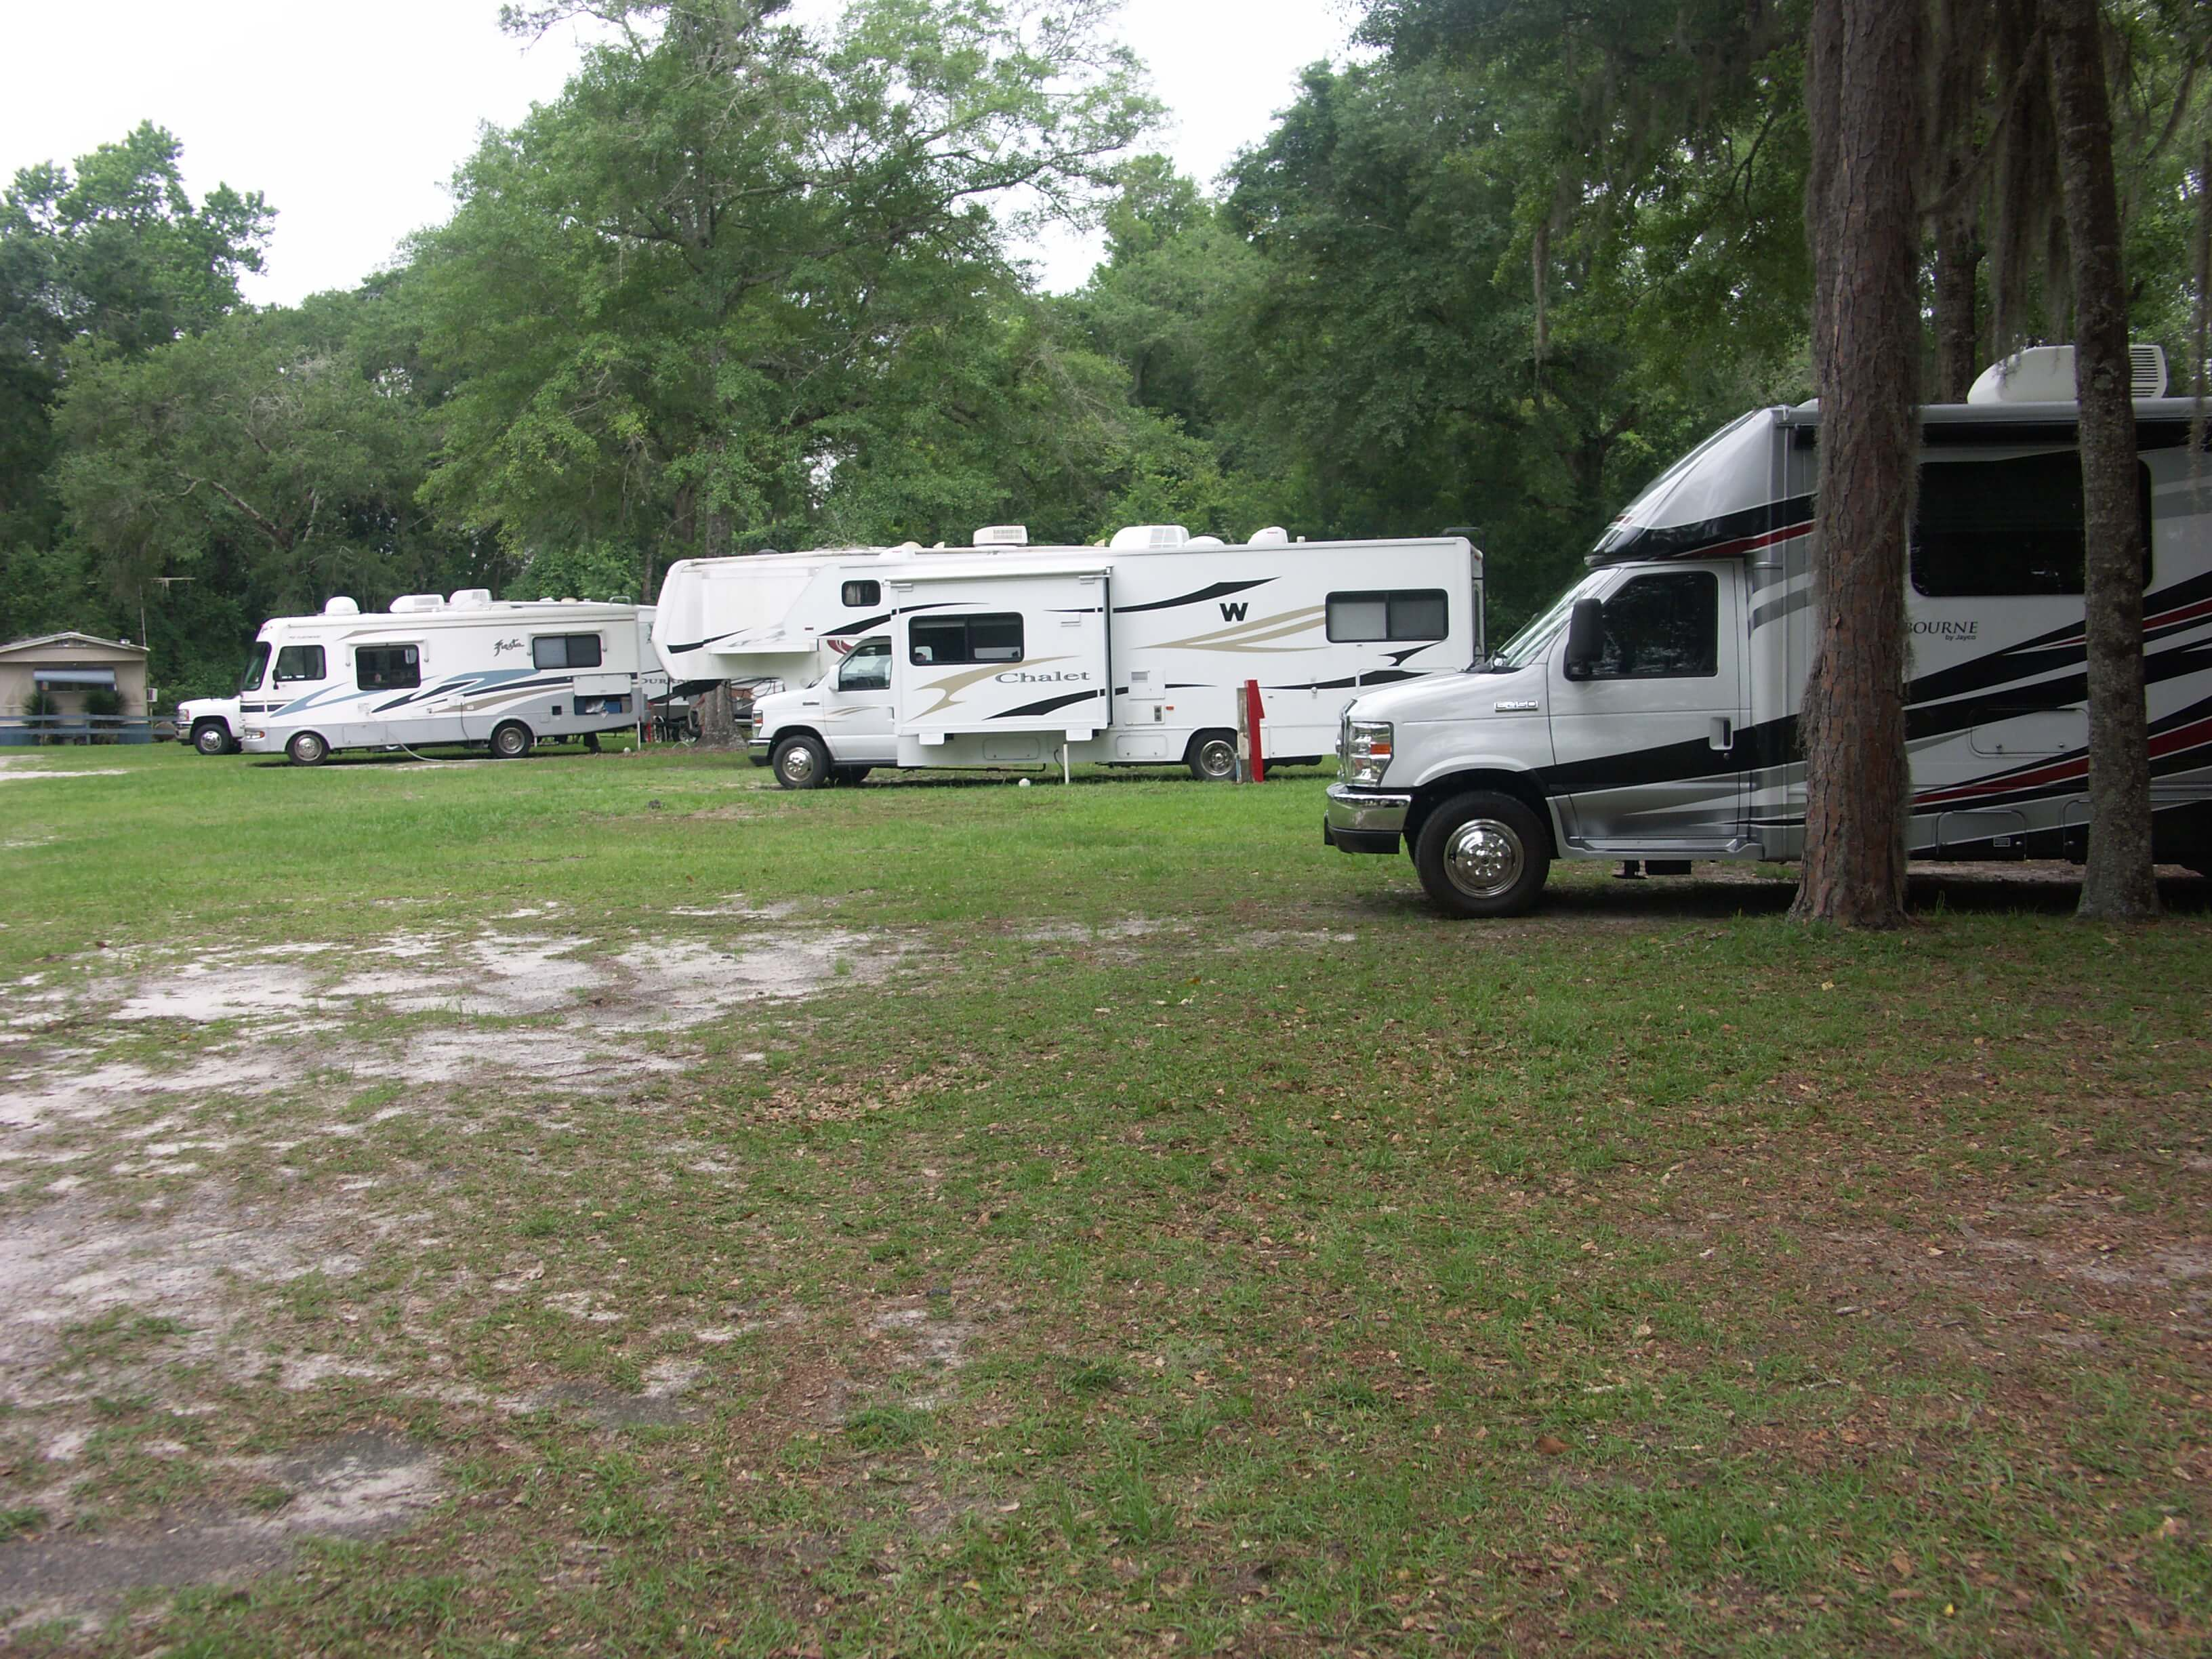 RV's at a campground